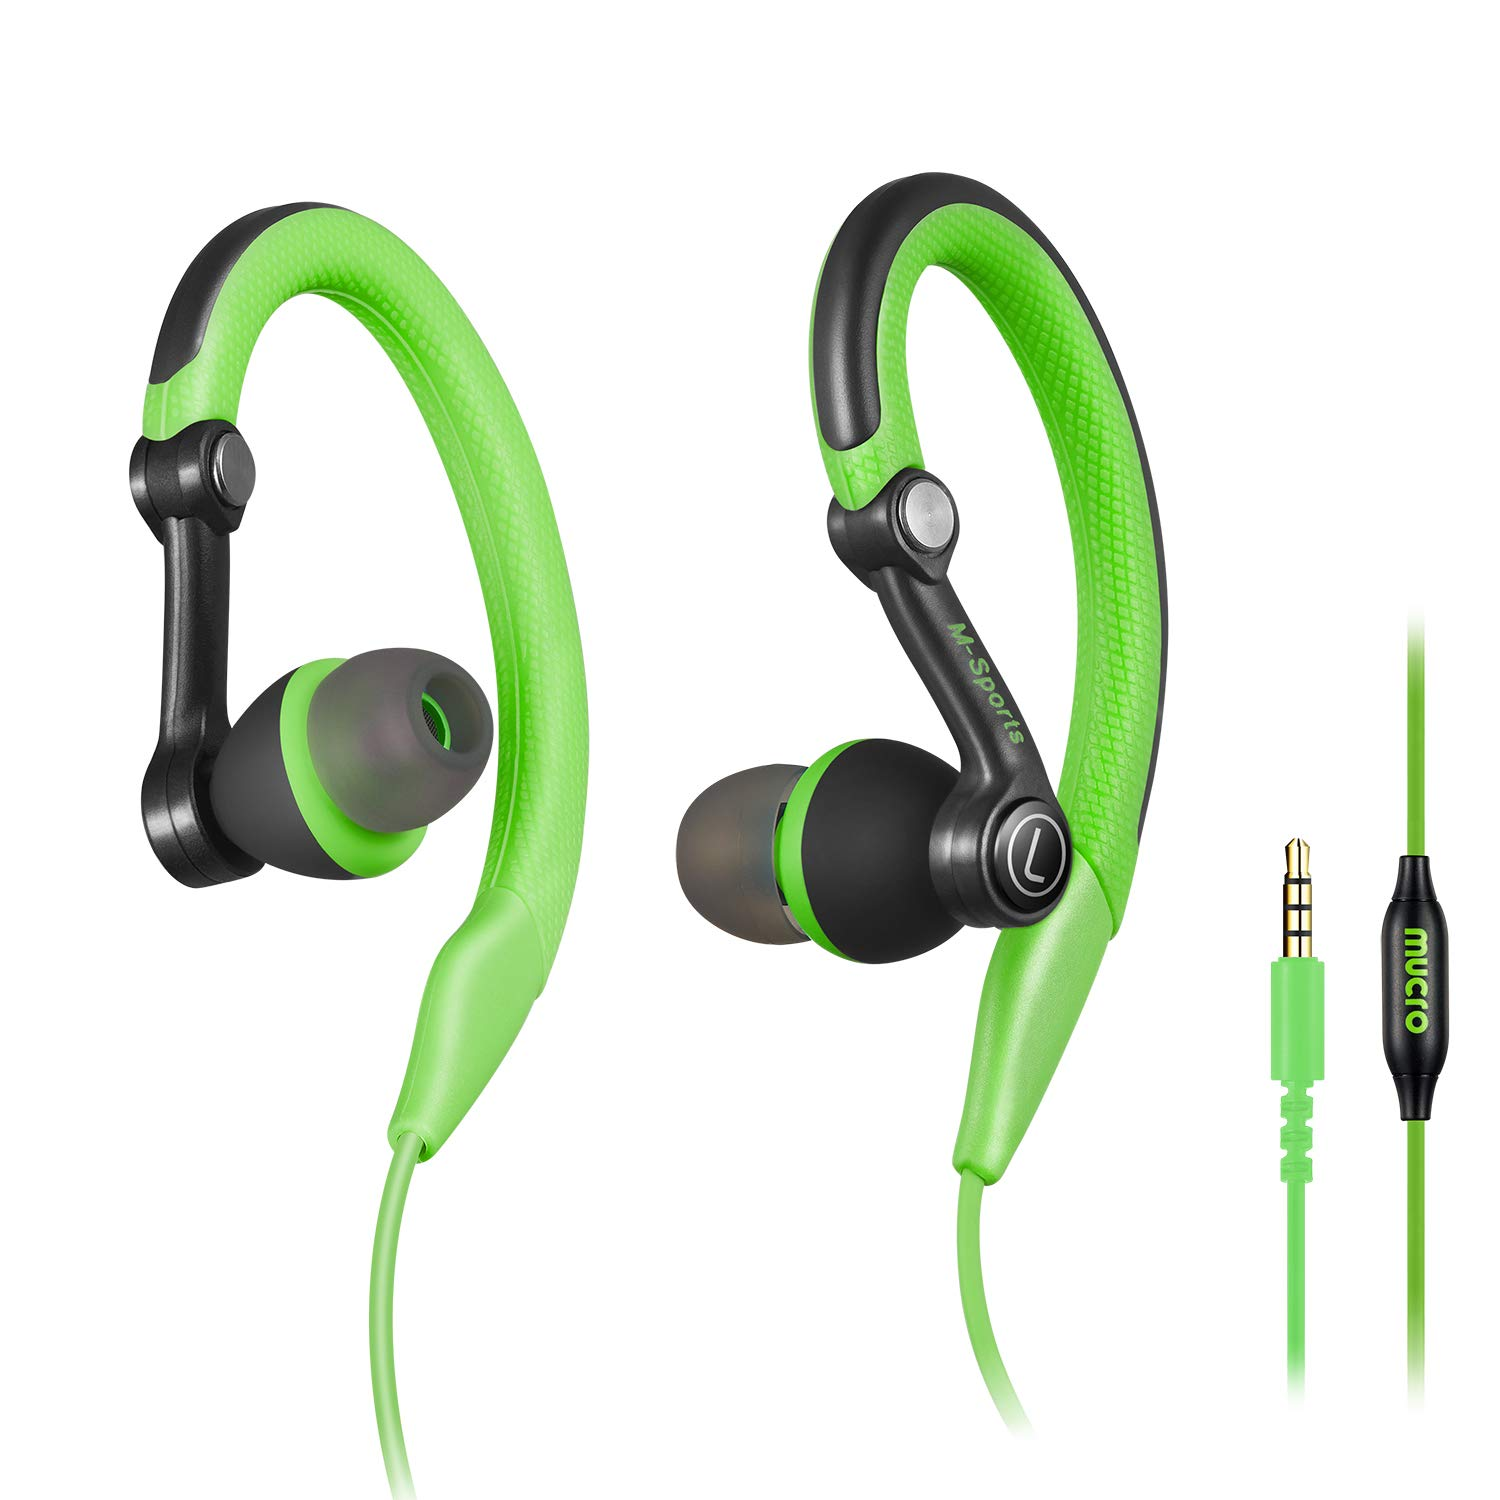 mucro Running Headphones Over Ear in Ear Sport Earbuds Earhook Wired Stereo Workout Ear Buds for Jogging Gym for Samsung Android Phones Tablets Etc(Green)